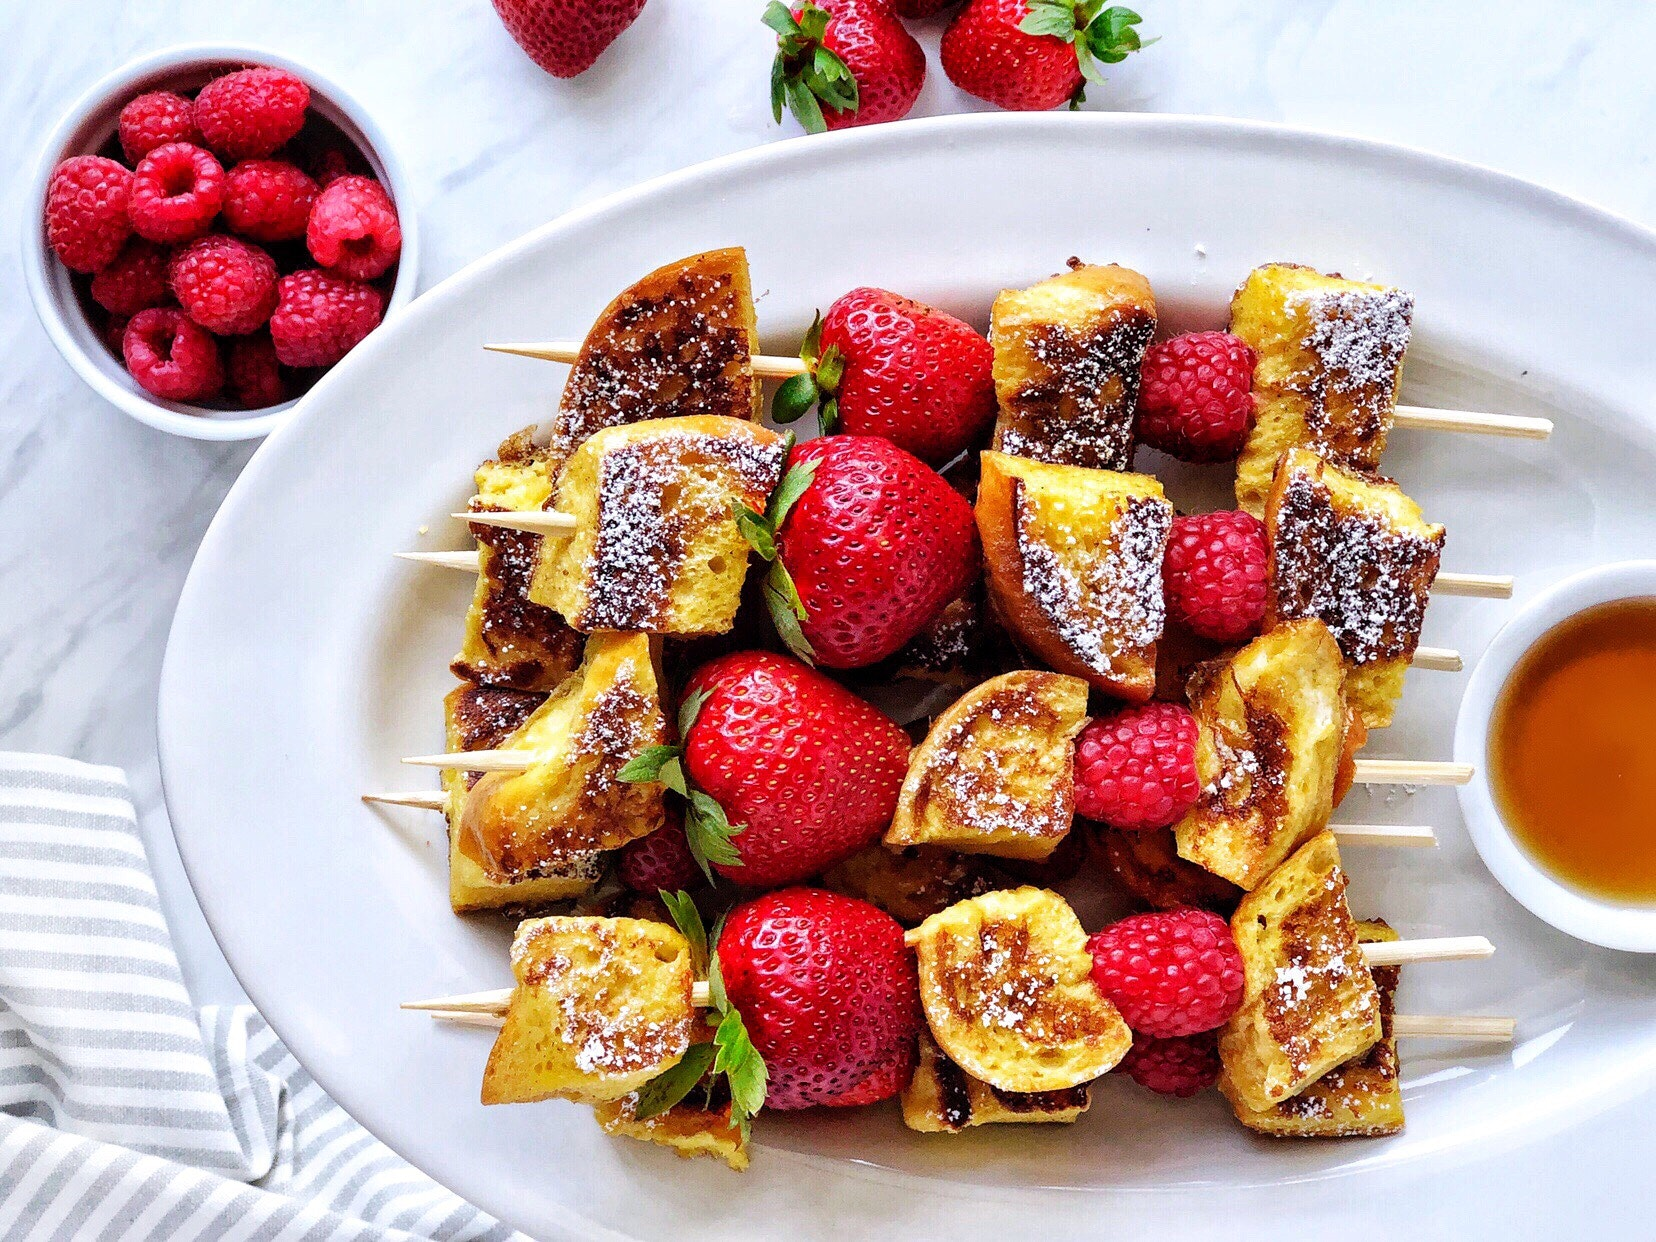 Berry french toast kebabs with french toast pieces, raspberries, and strawberries on a skewer